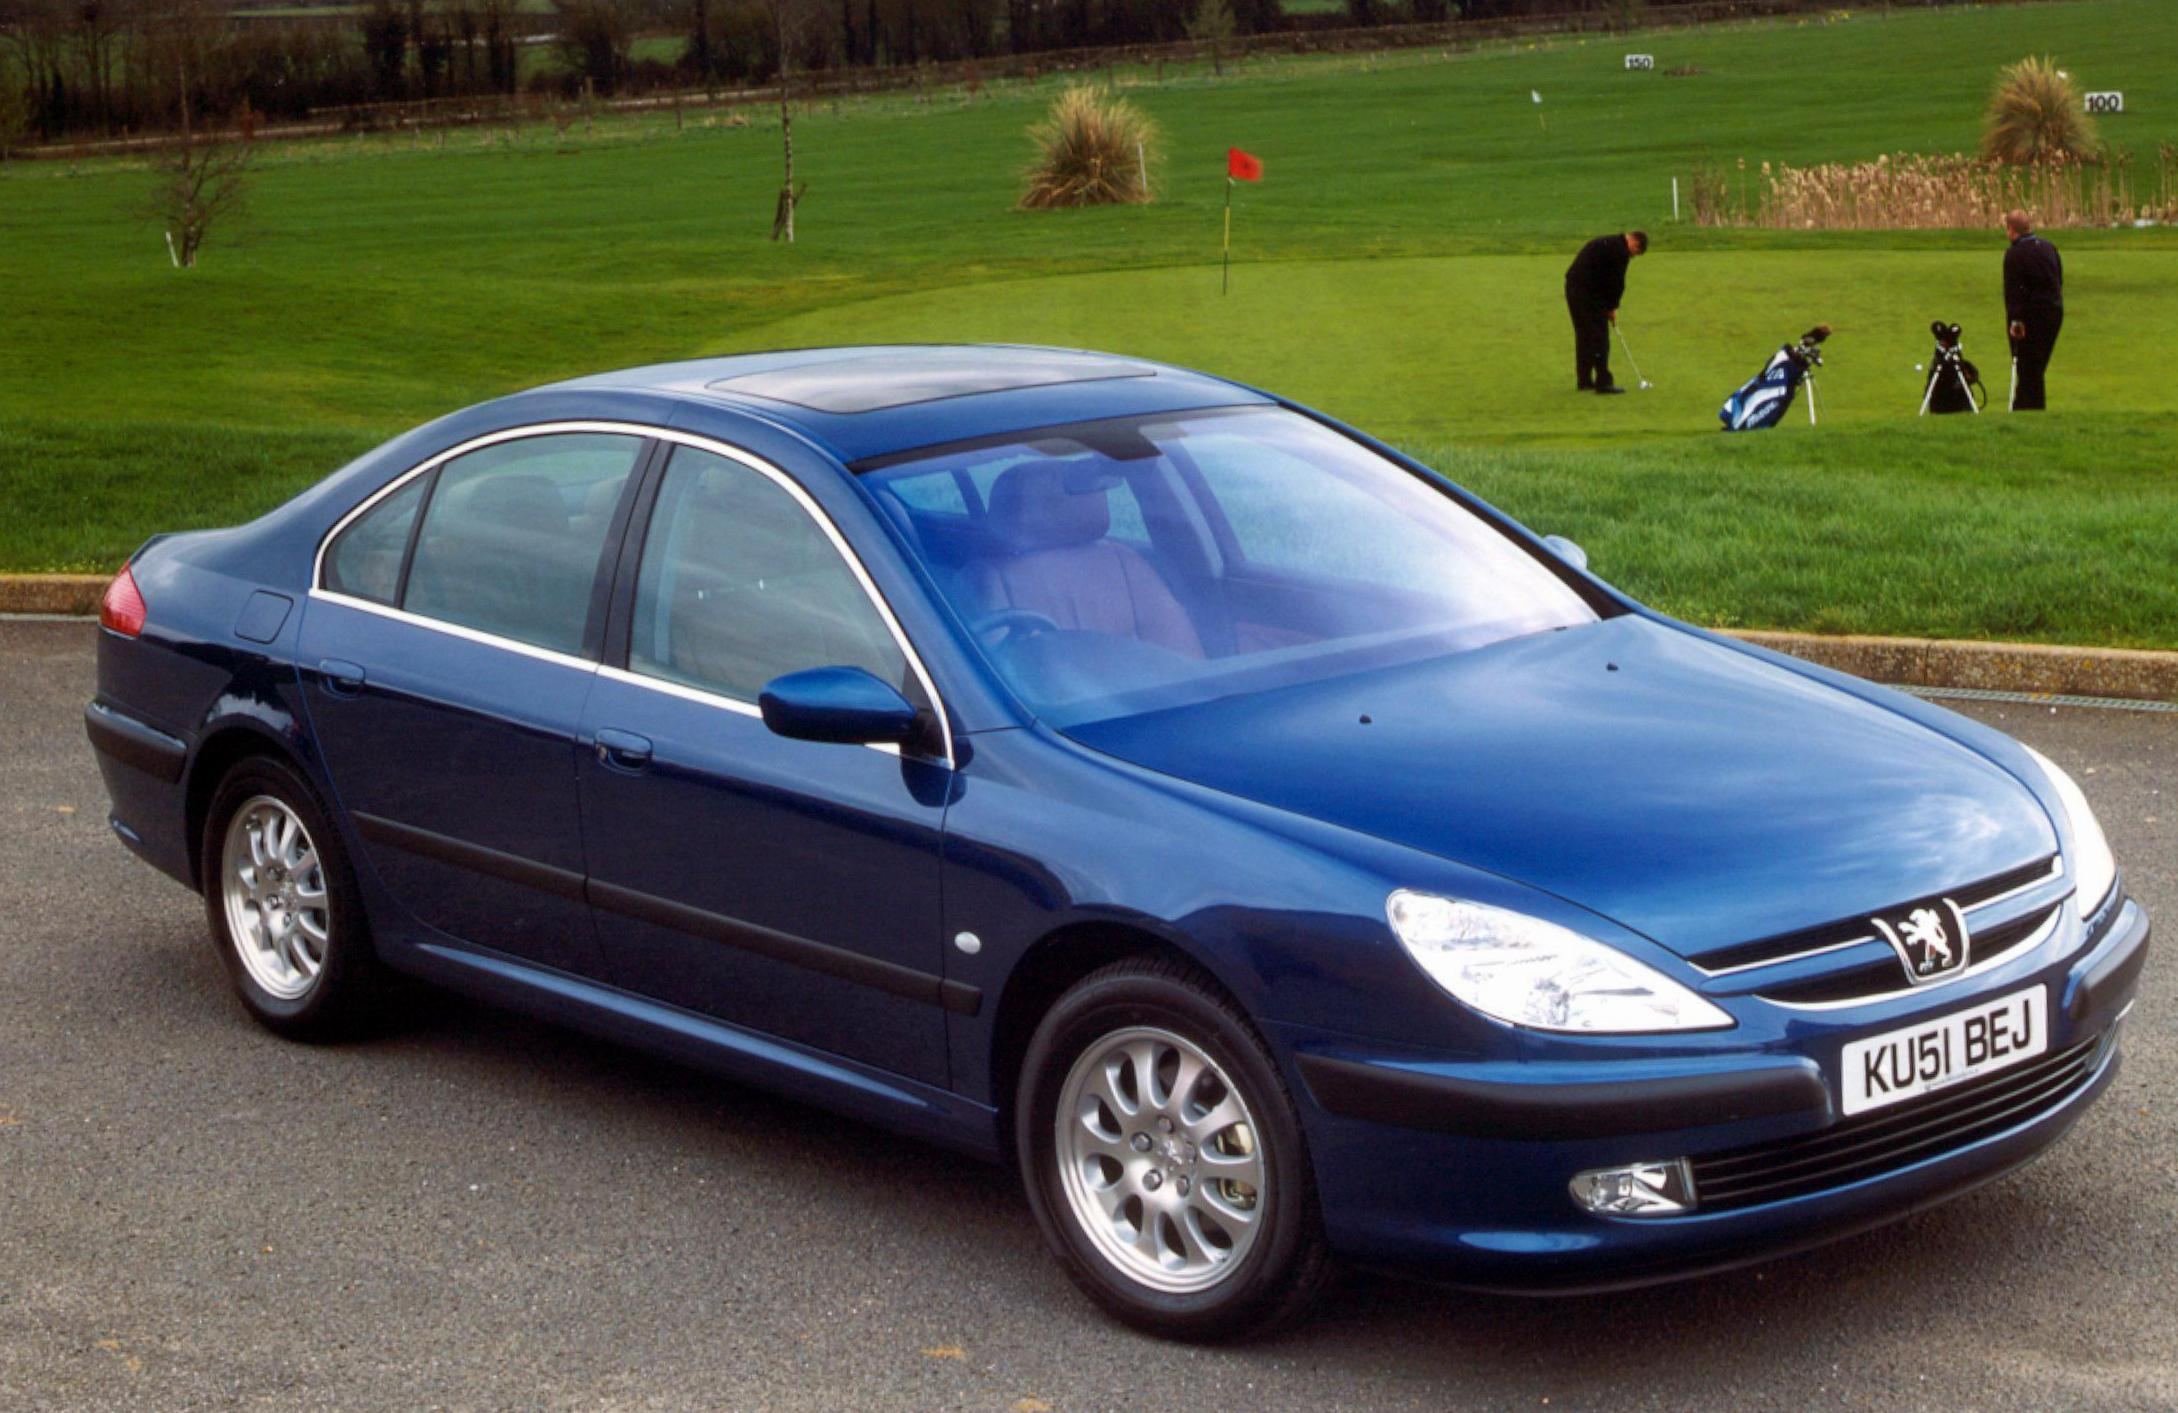 Peugeot 607 Photos and Specs. Photo: 607 Peugeot parts and 23 ...